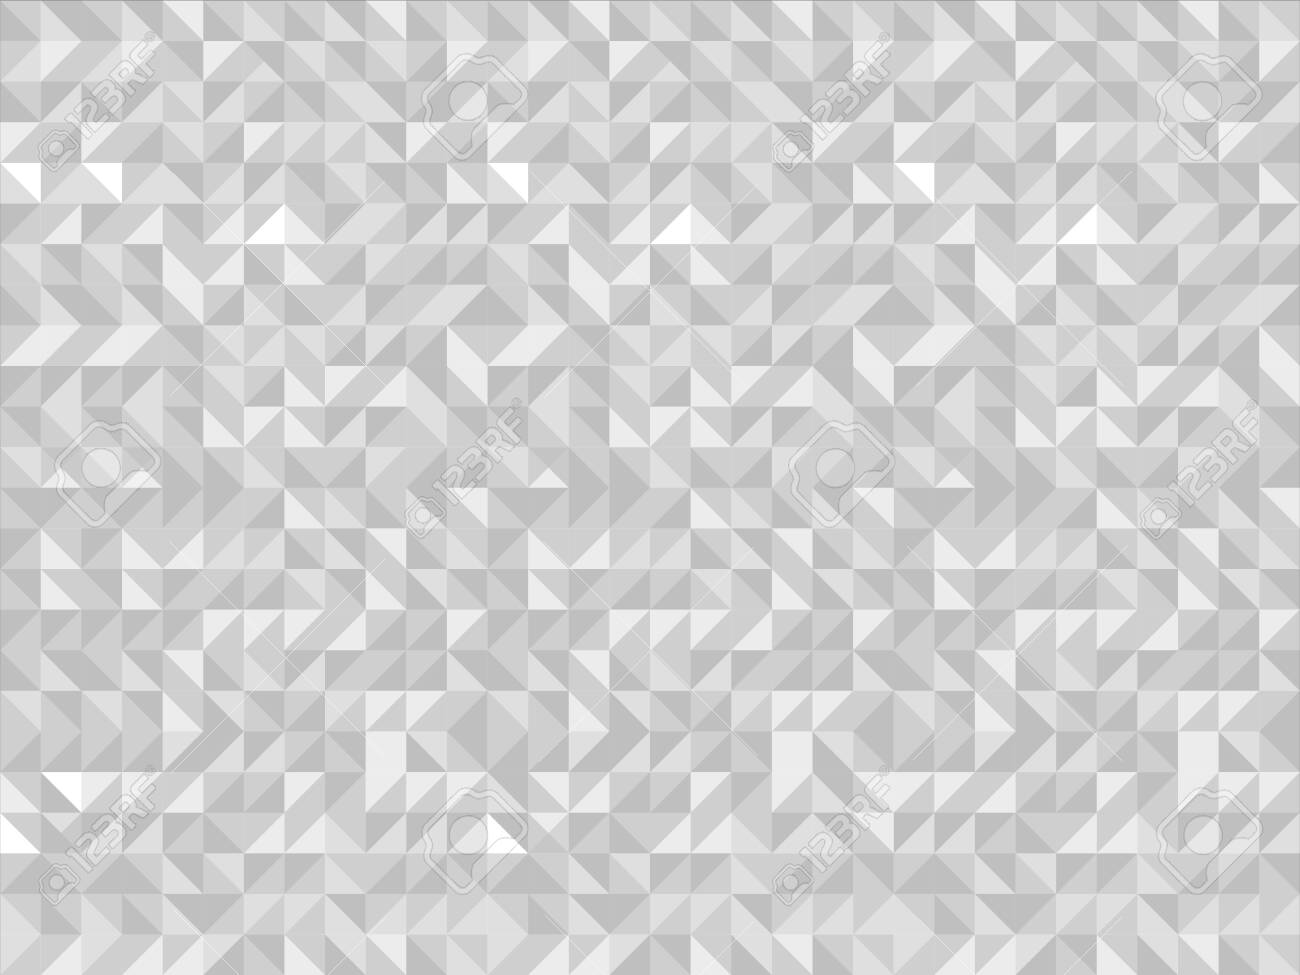 White triangle tiles seamless pattern, vector background. - 131655407